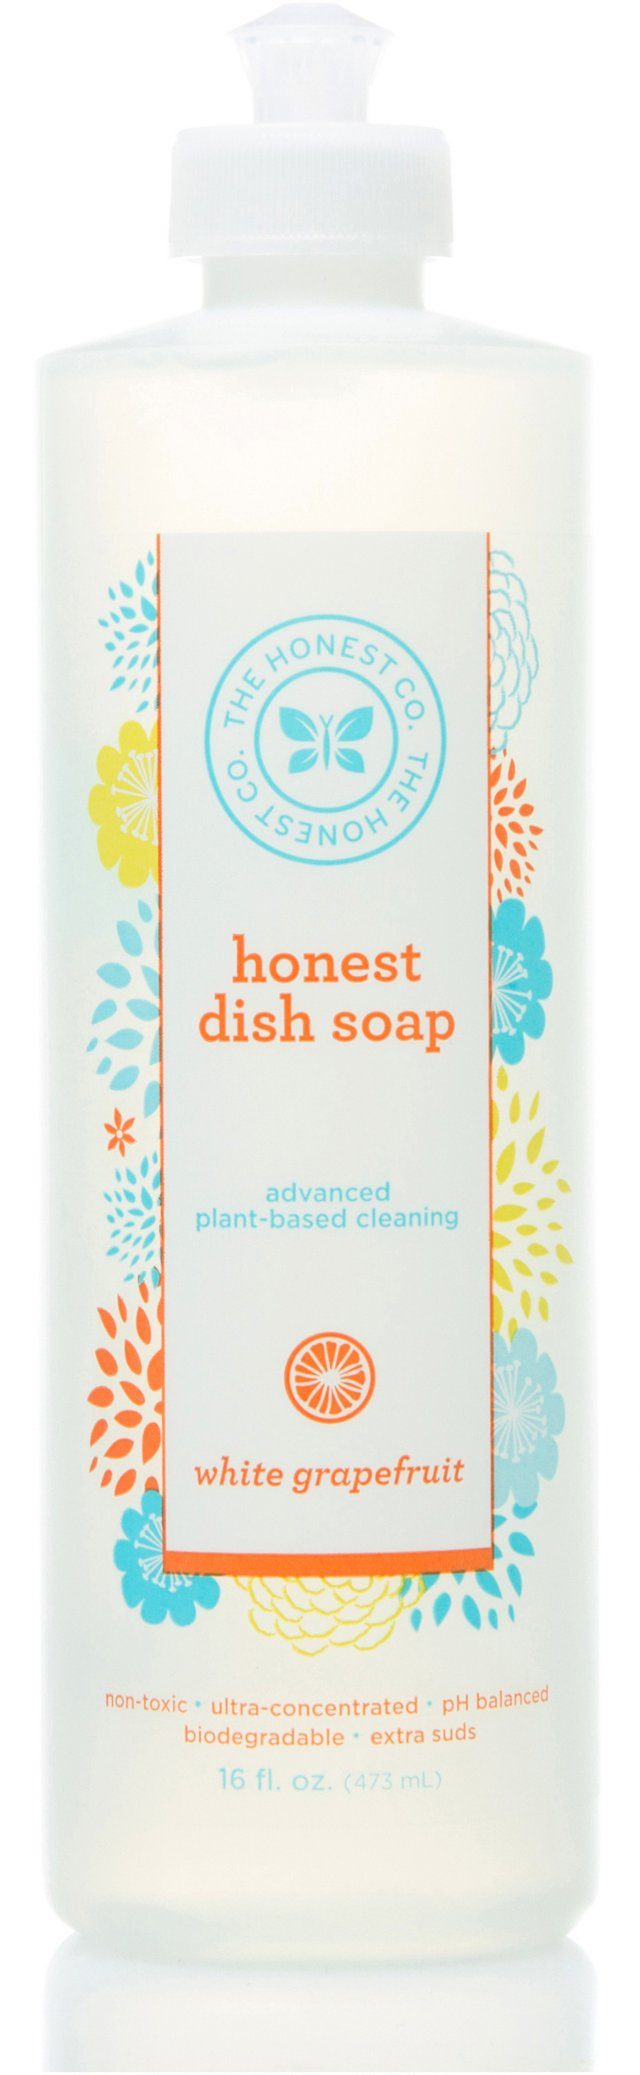 White Grapefruit Dish Soap, Set of 2